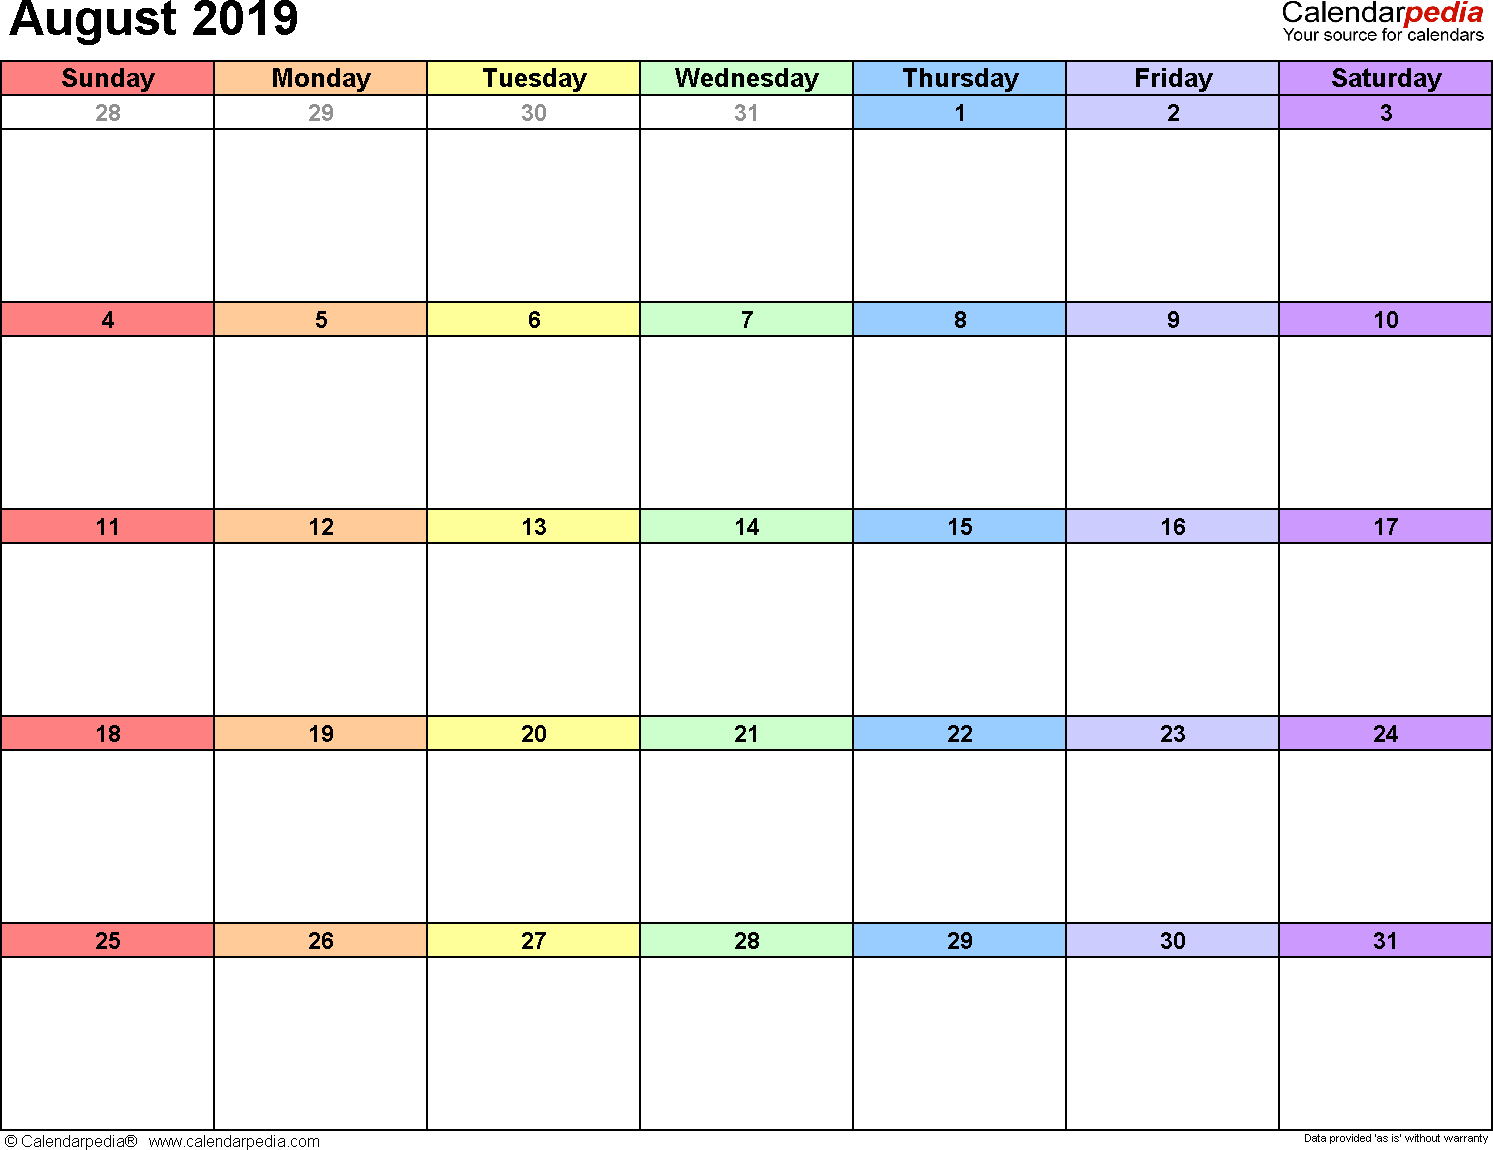 August 2019 Calendars For Word, Excel & Pdf pertaining to August Calendar Template Excel